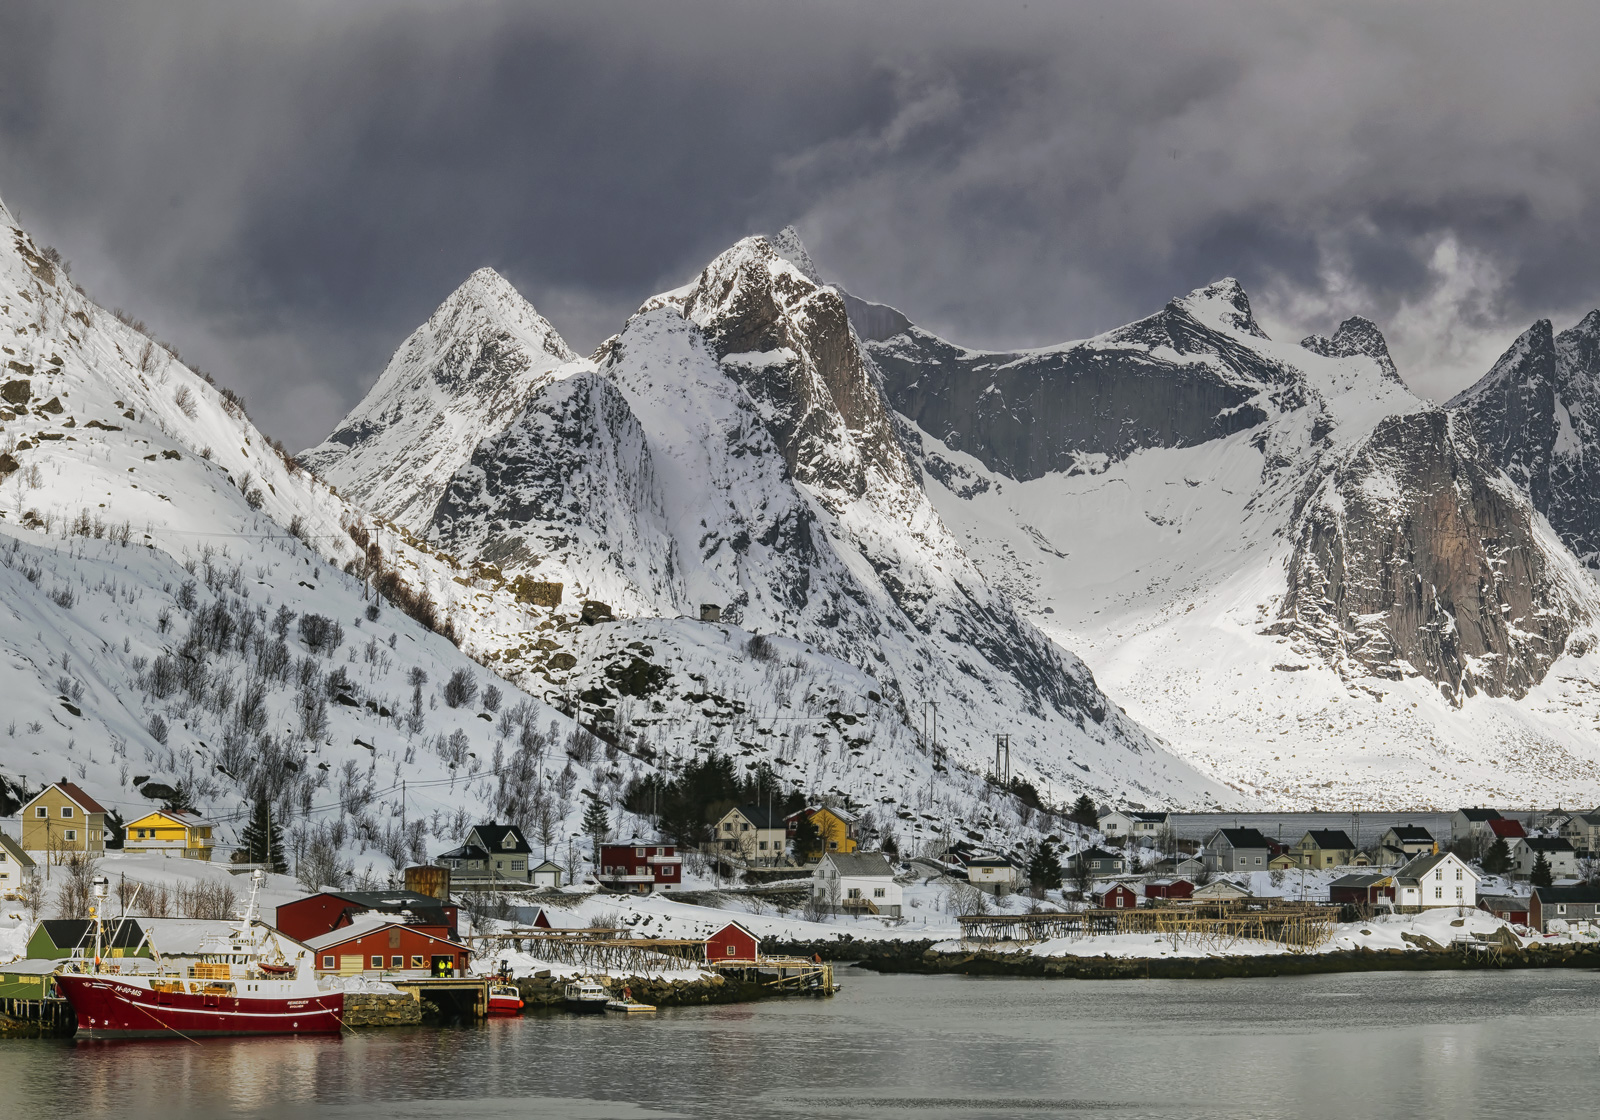 Reine Snow Sublime, Reine, Lofoten, Norway, blizzard, snow, storms, rolled, snow clad peaks, harbour, beautiful, forbidding, sunlight, dappling, mountain, menacing, photo